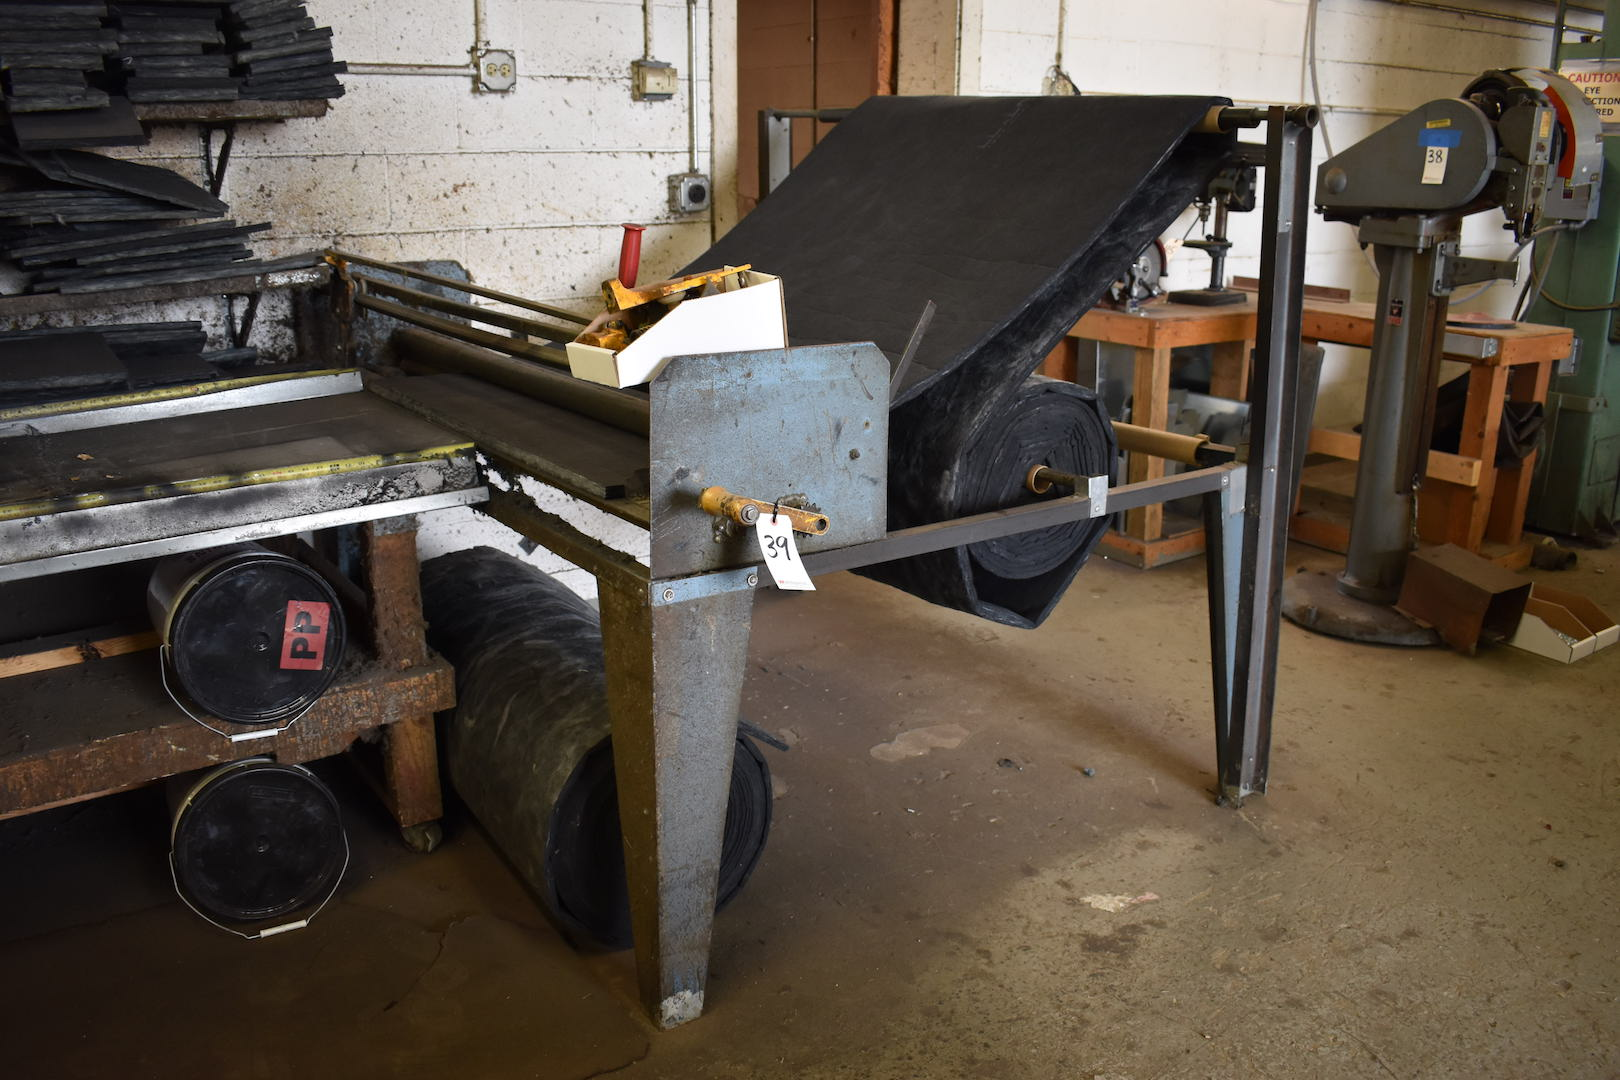 """Lot 39 - Lot: 60"""" Insulation Slitter with Insulation Material & Adhesive Drum with Spray Gun"""